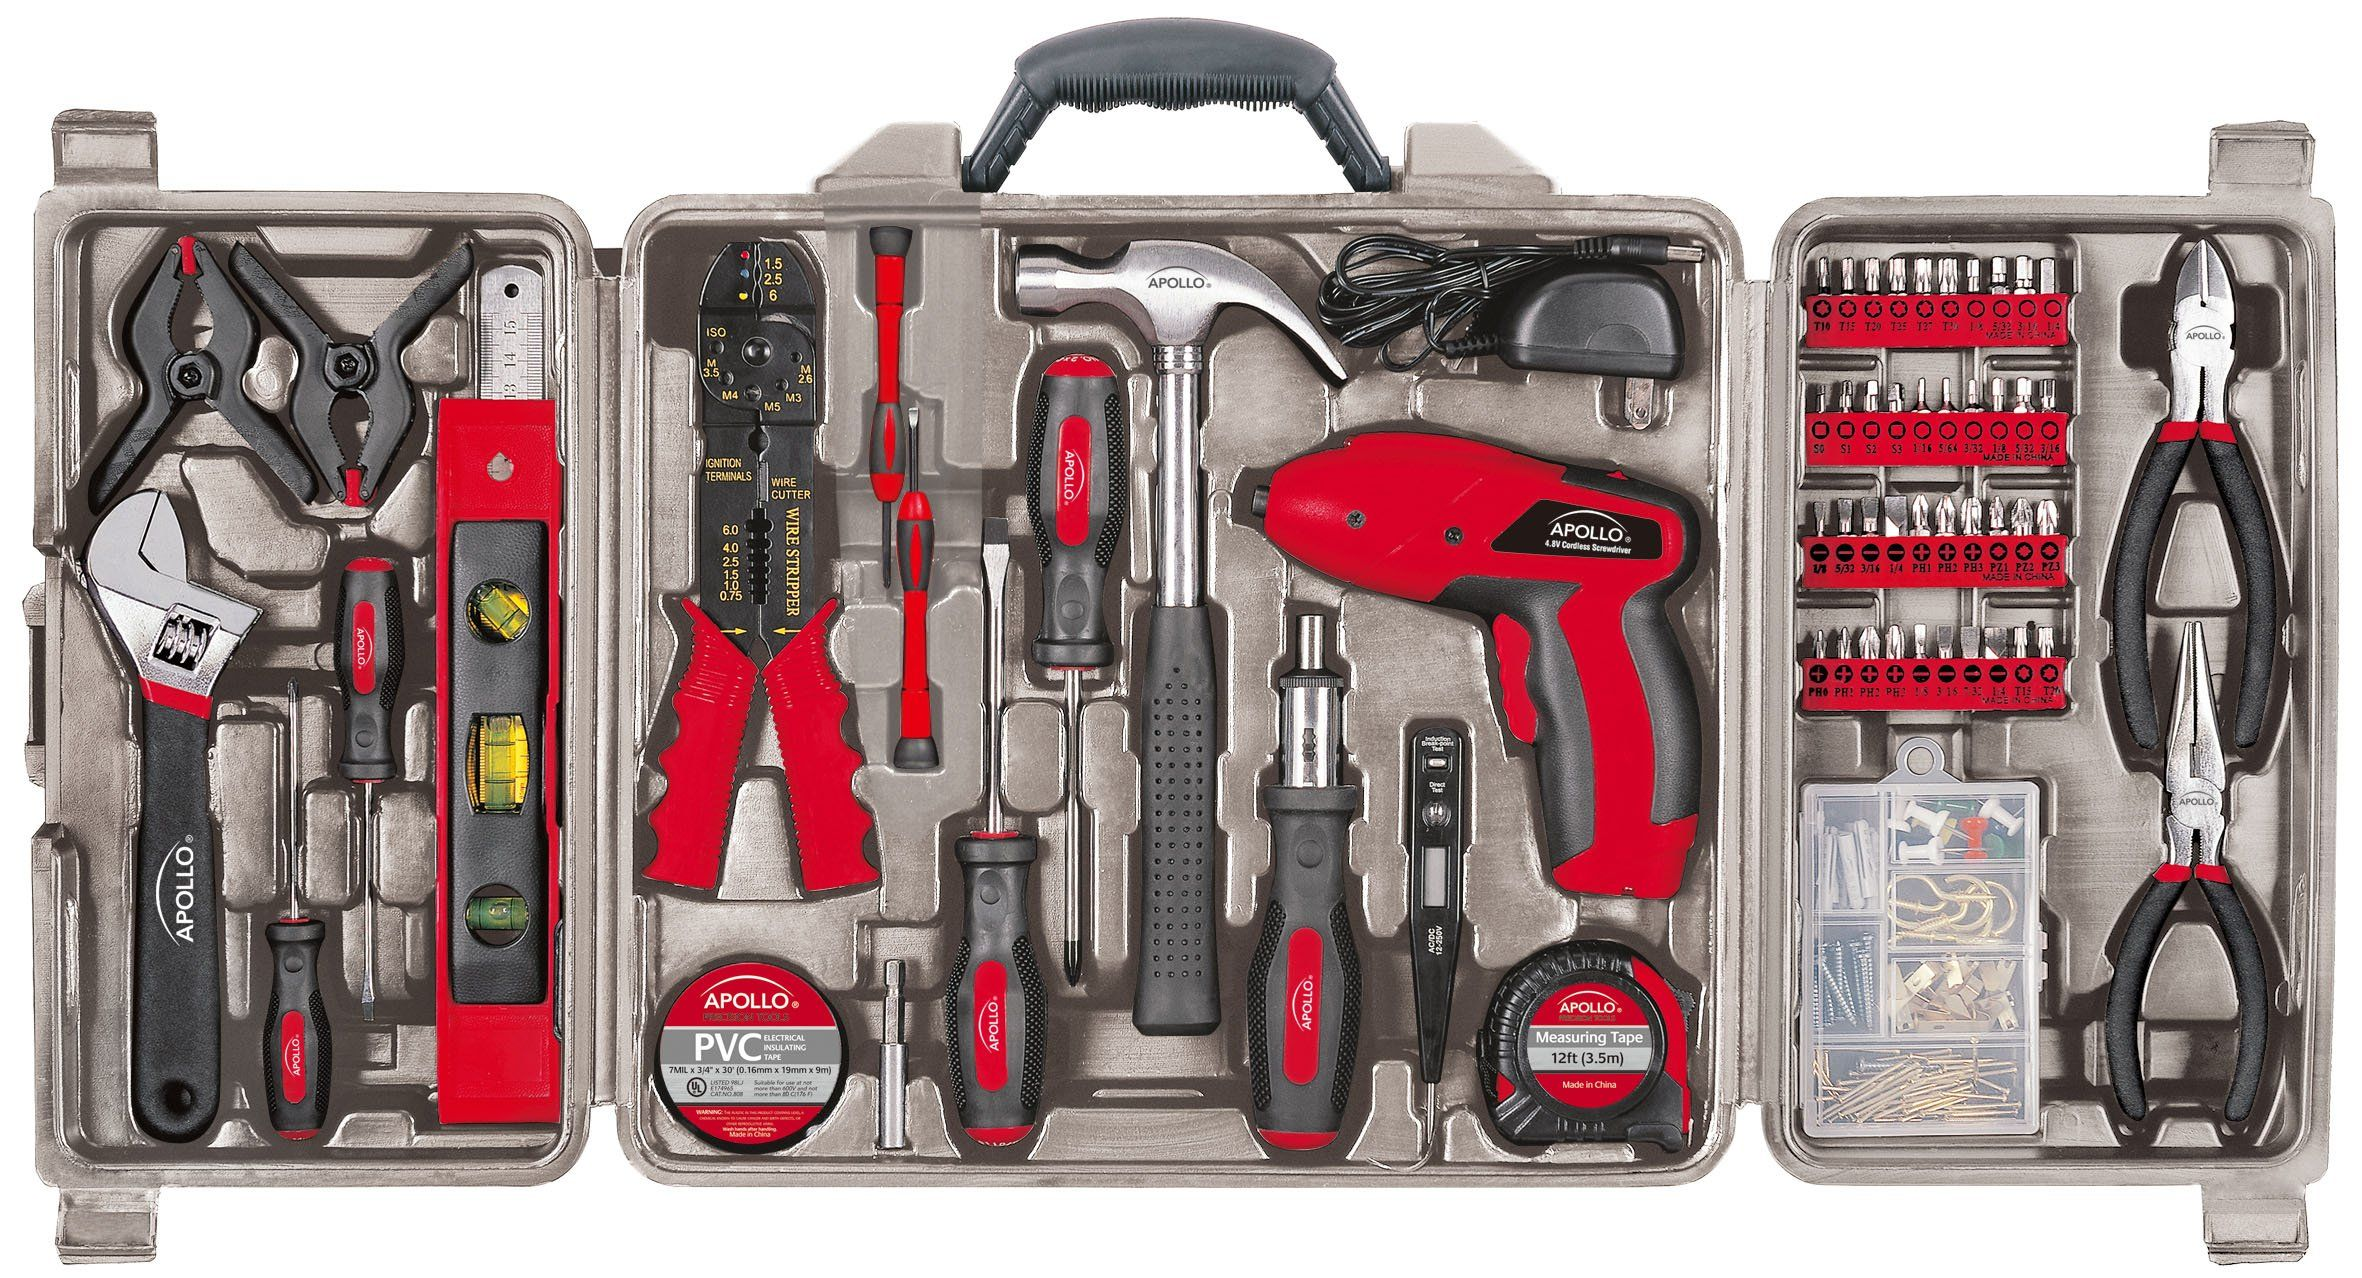 Apollo Tools Dt0738 161 Piece Complete Household Tool Kit With 4 8 Volt Cordless Screwdriver And Most Useful Hand Tools Household Tools Home Tool Kits Tool Kit